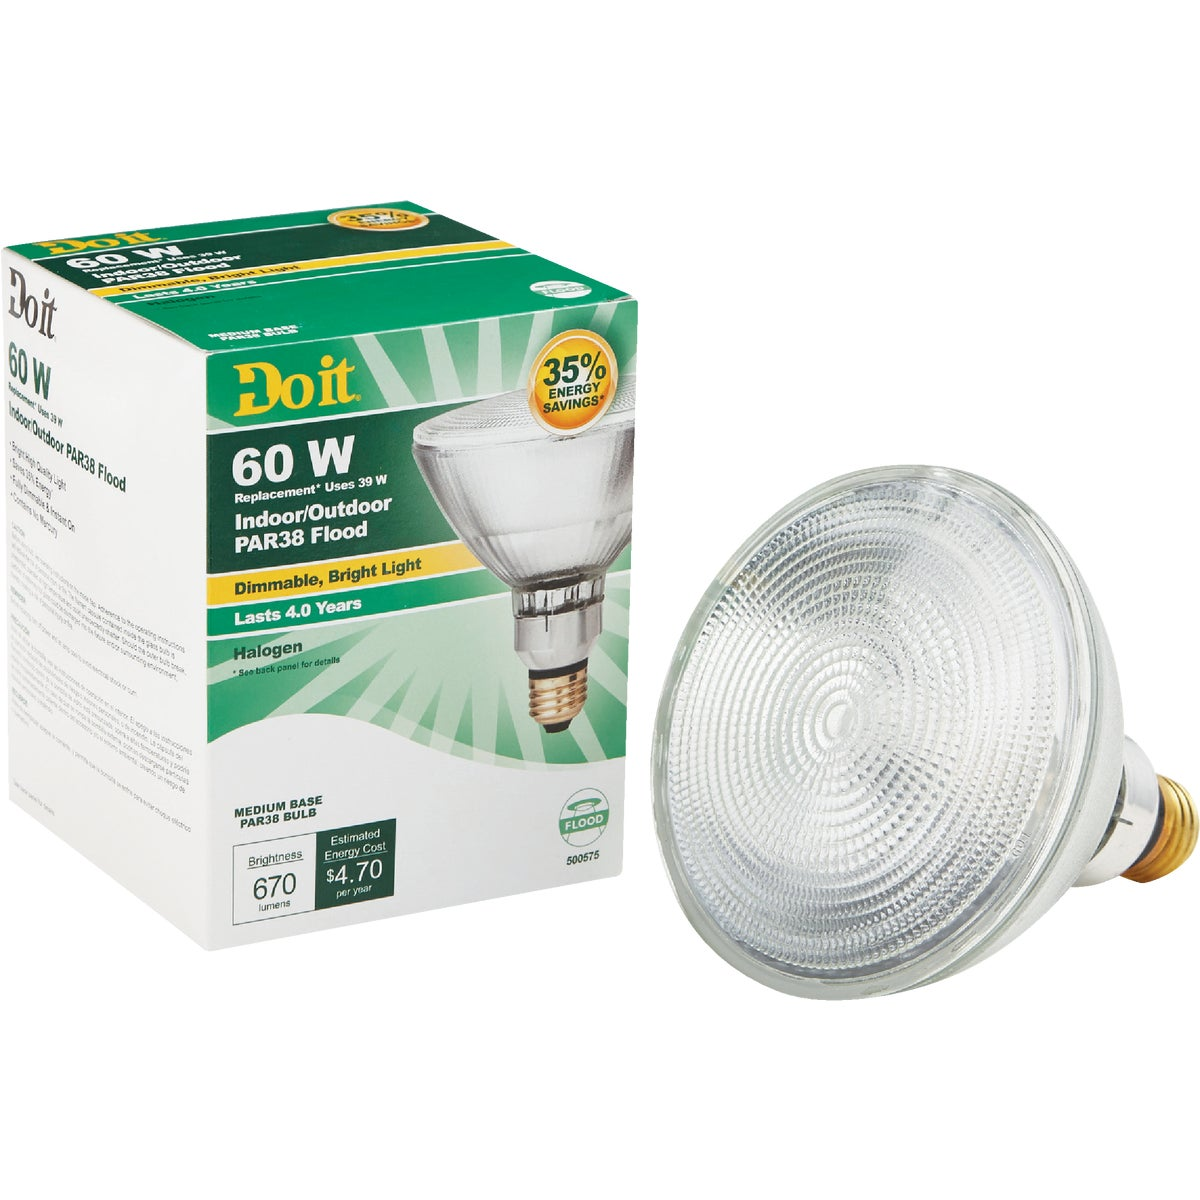 60W PAR38 HAL FLOOD BULB - 90832 by G E Private Label